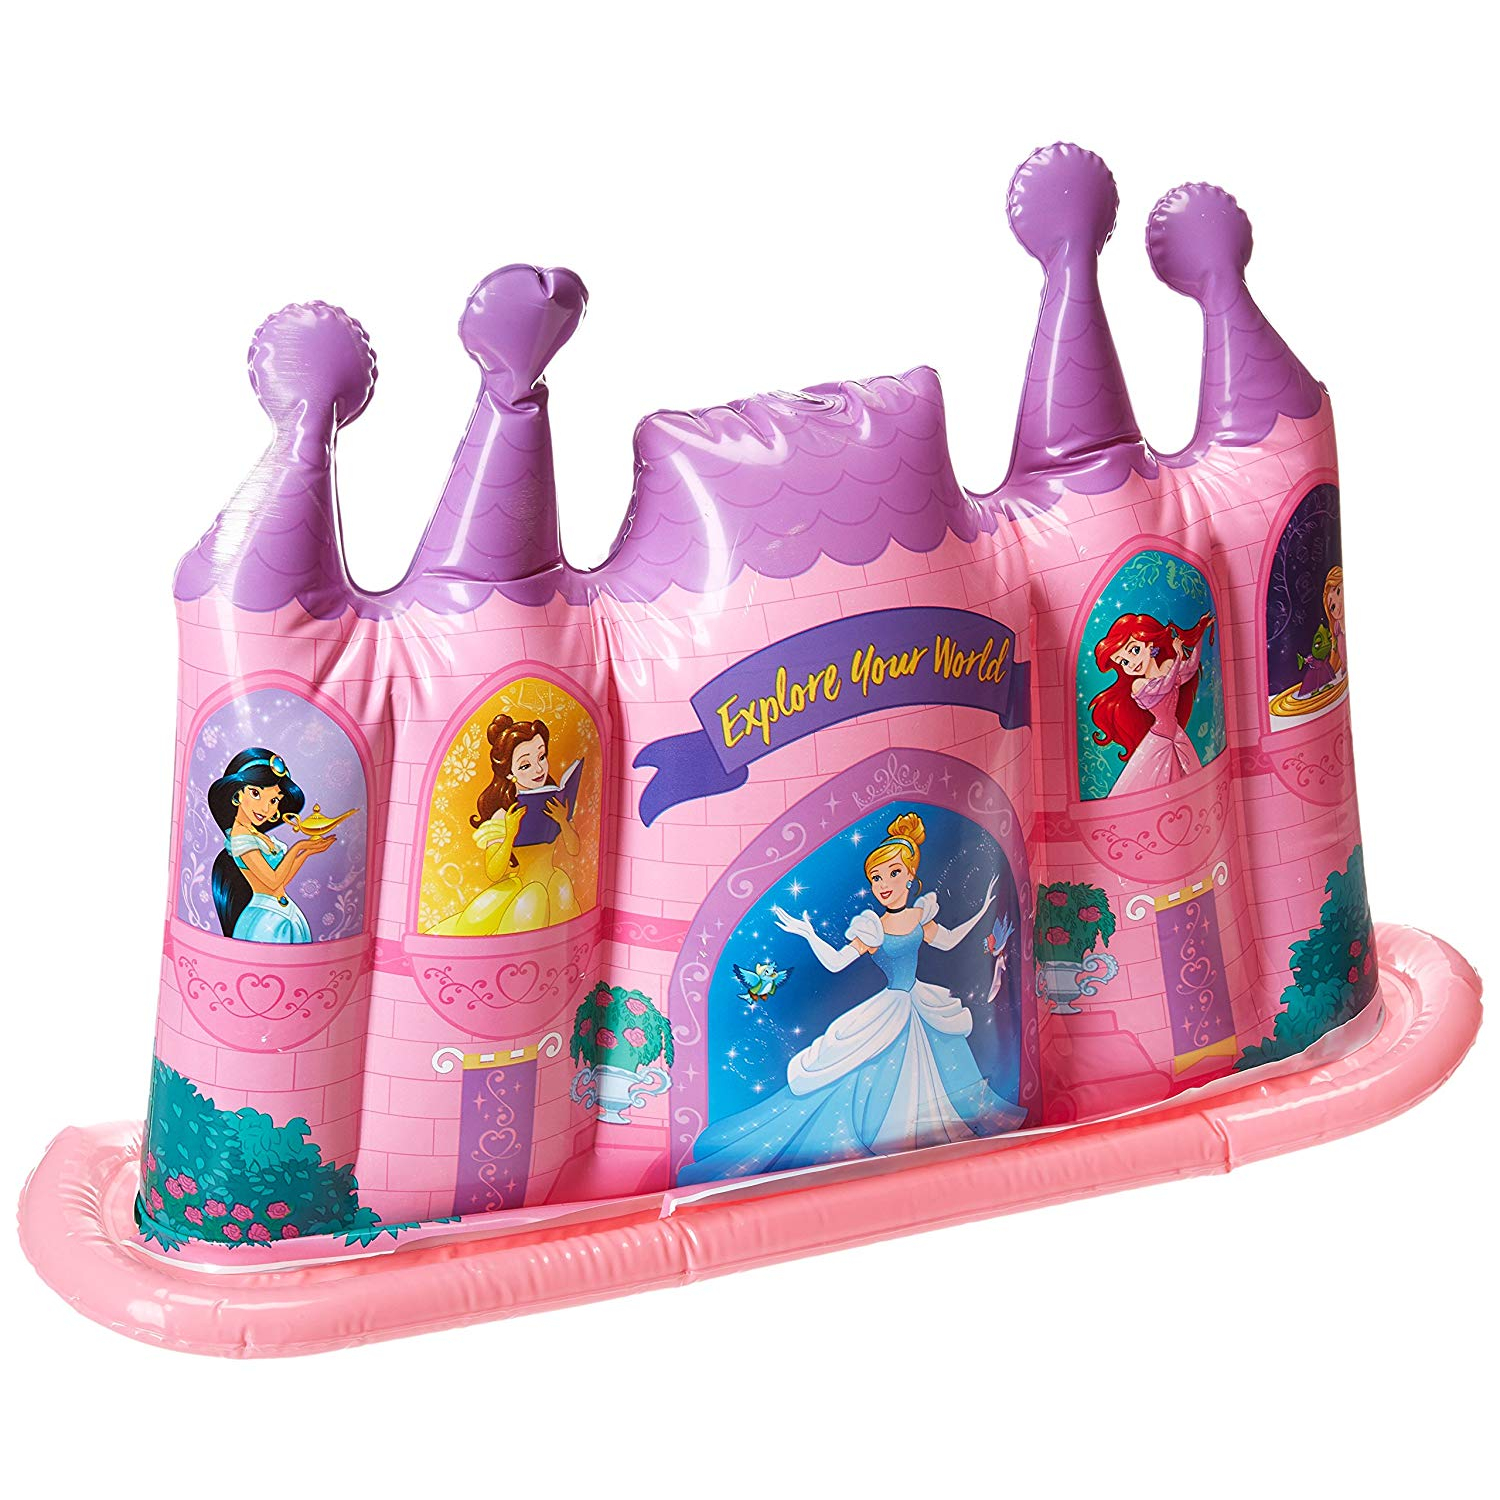 Disney Princess Inflatable Water Sprinkler Castle